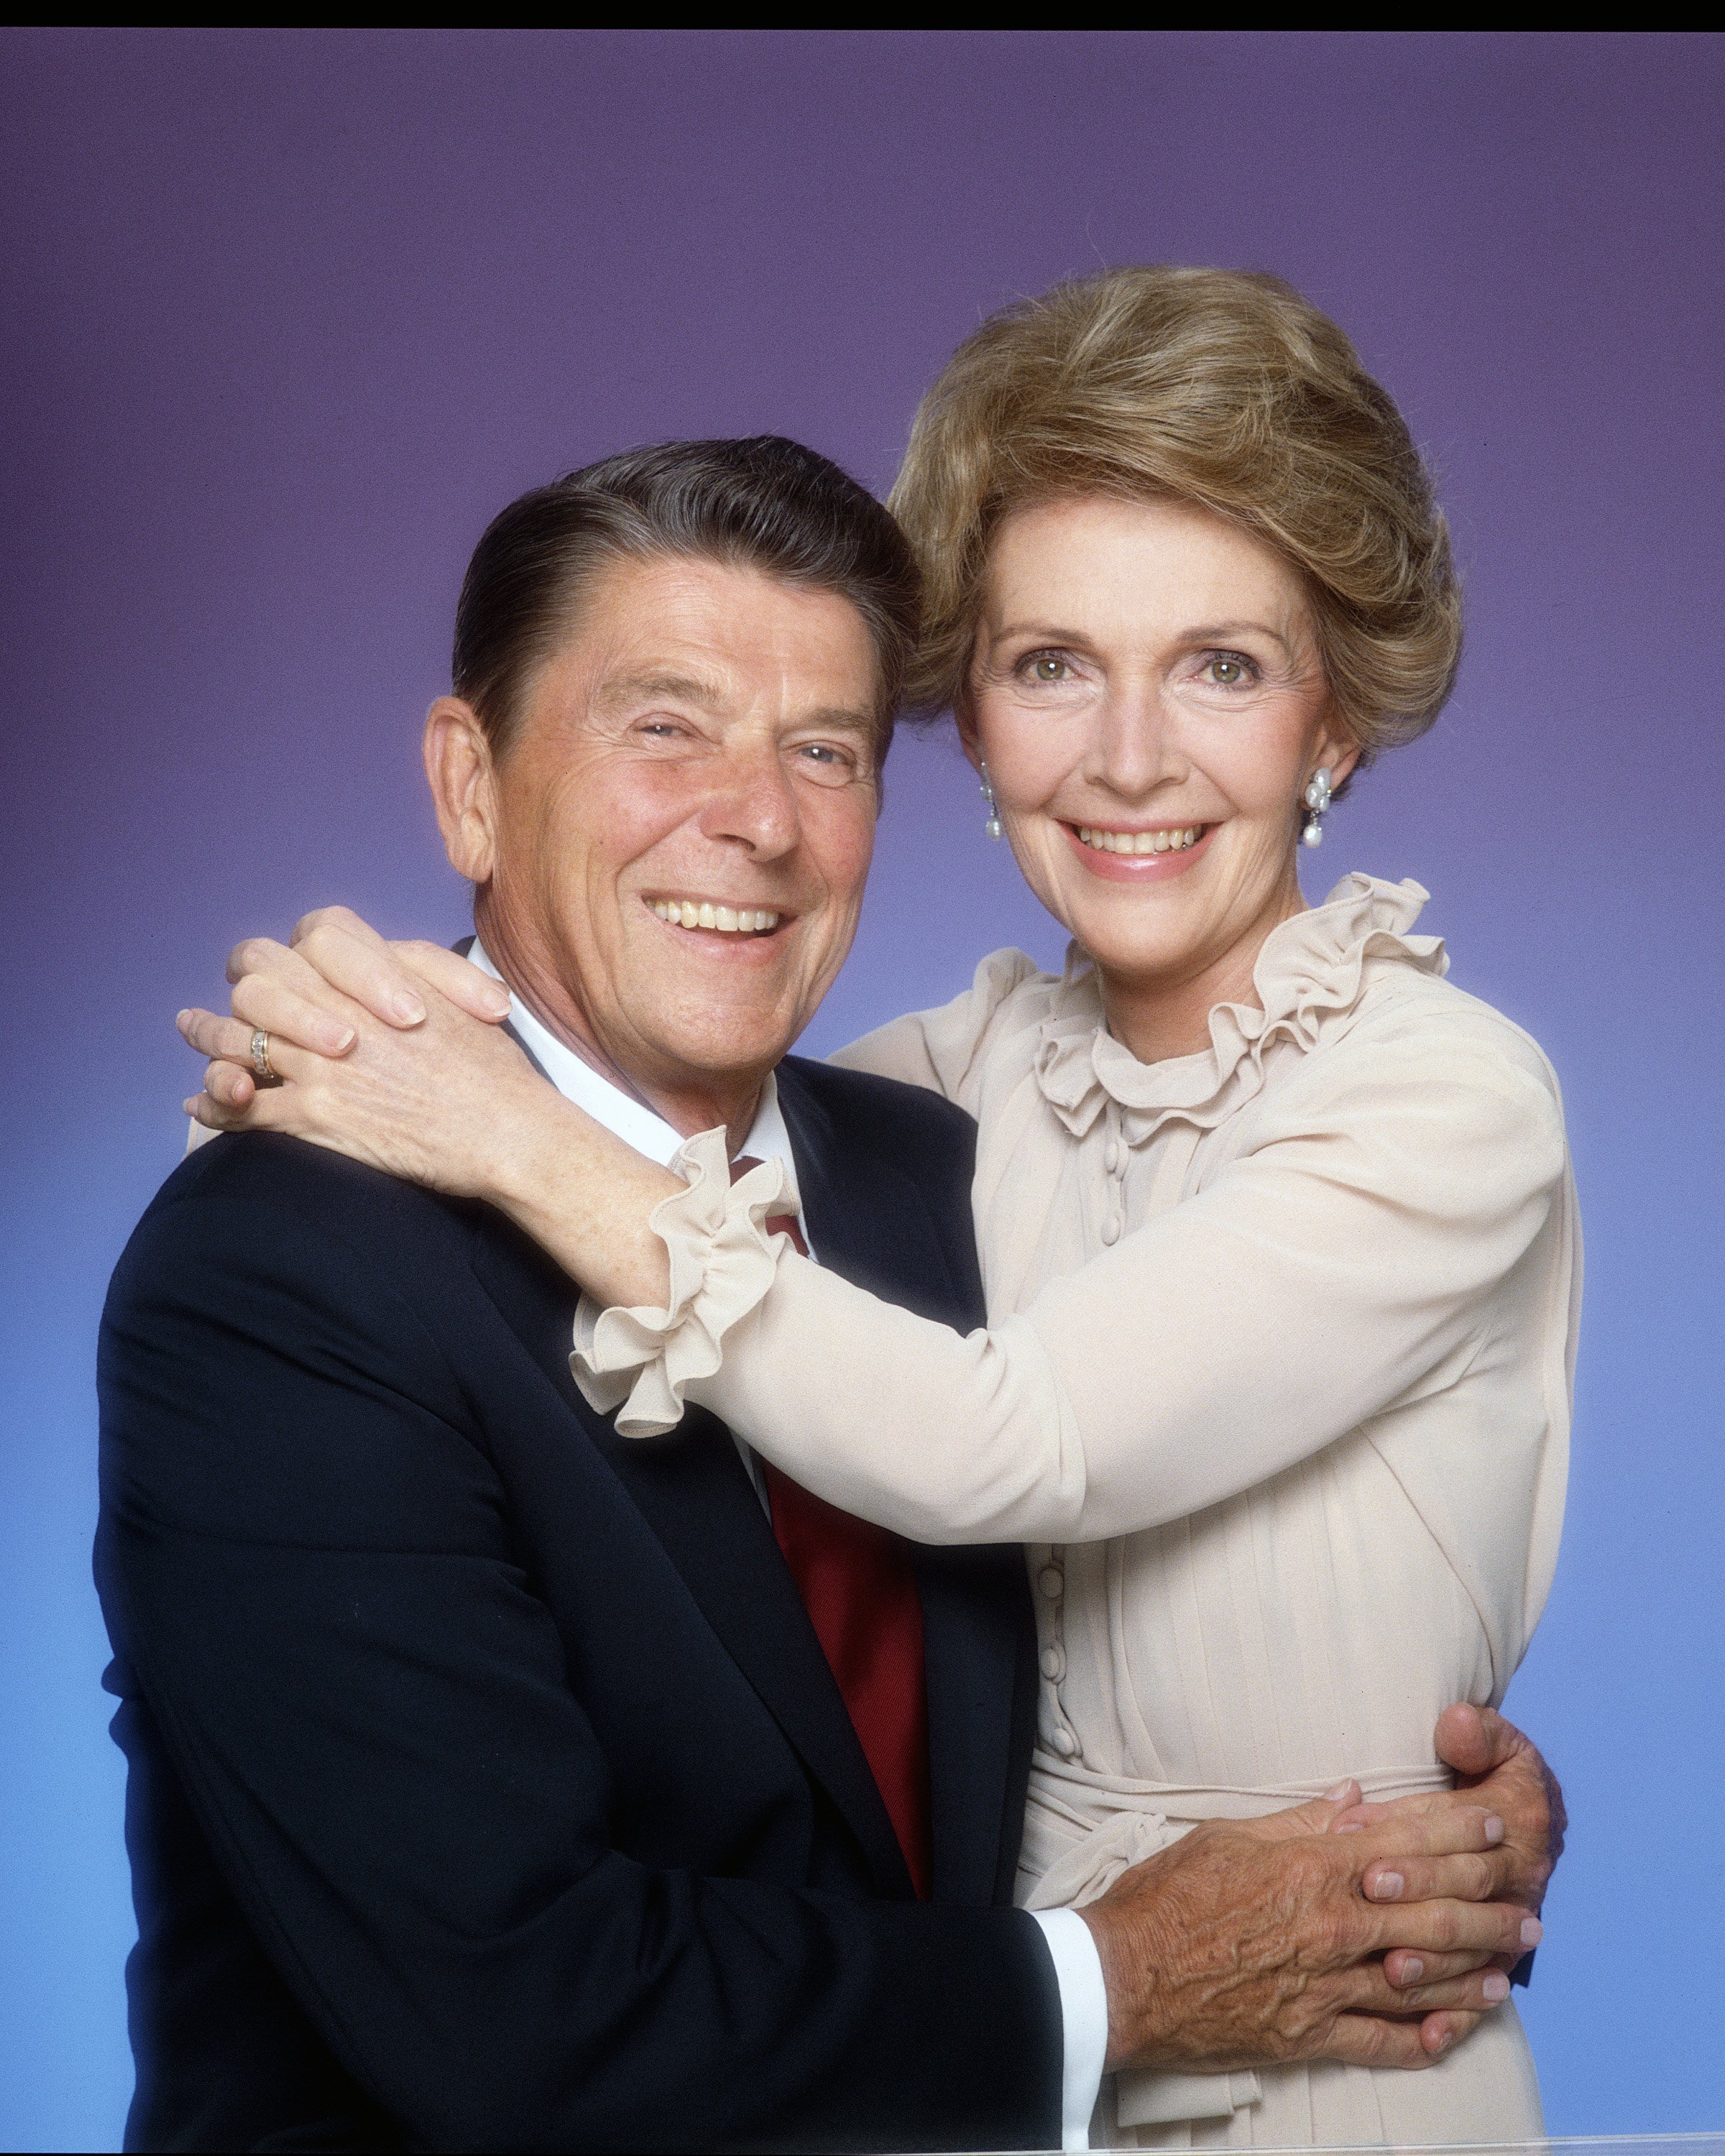 President Ronald Reagan and his wife Nancy pose for a portrait Session in January, 1981 in Los Angeles, California.   Source: Getty Images